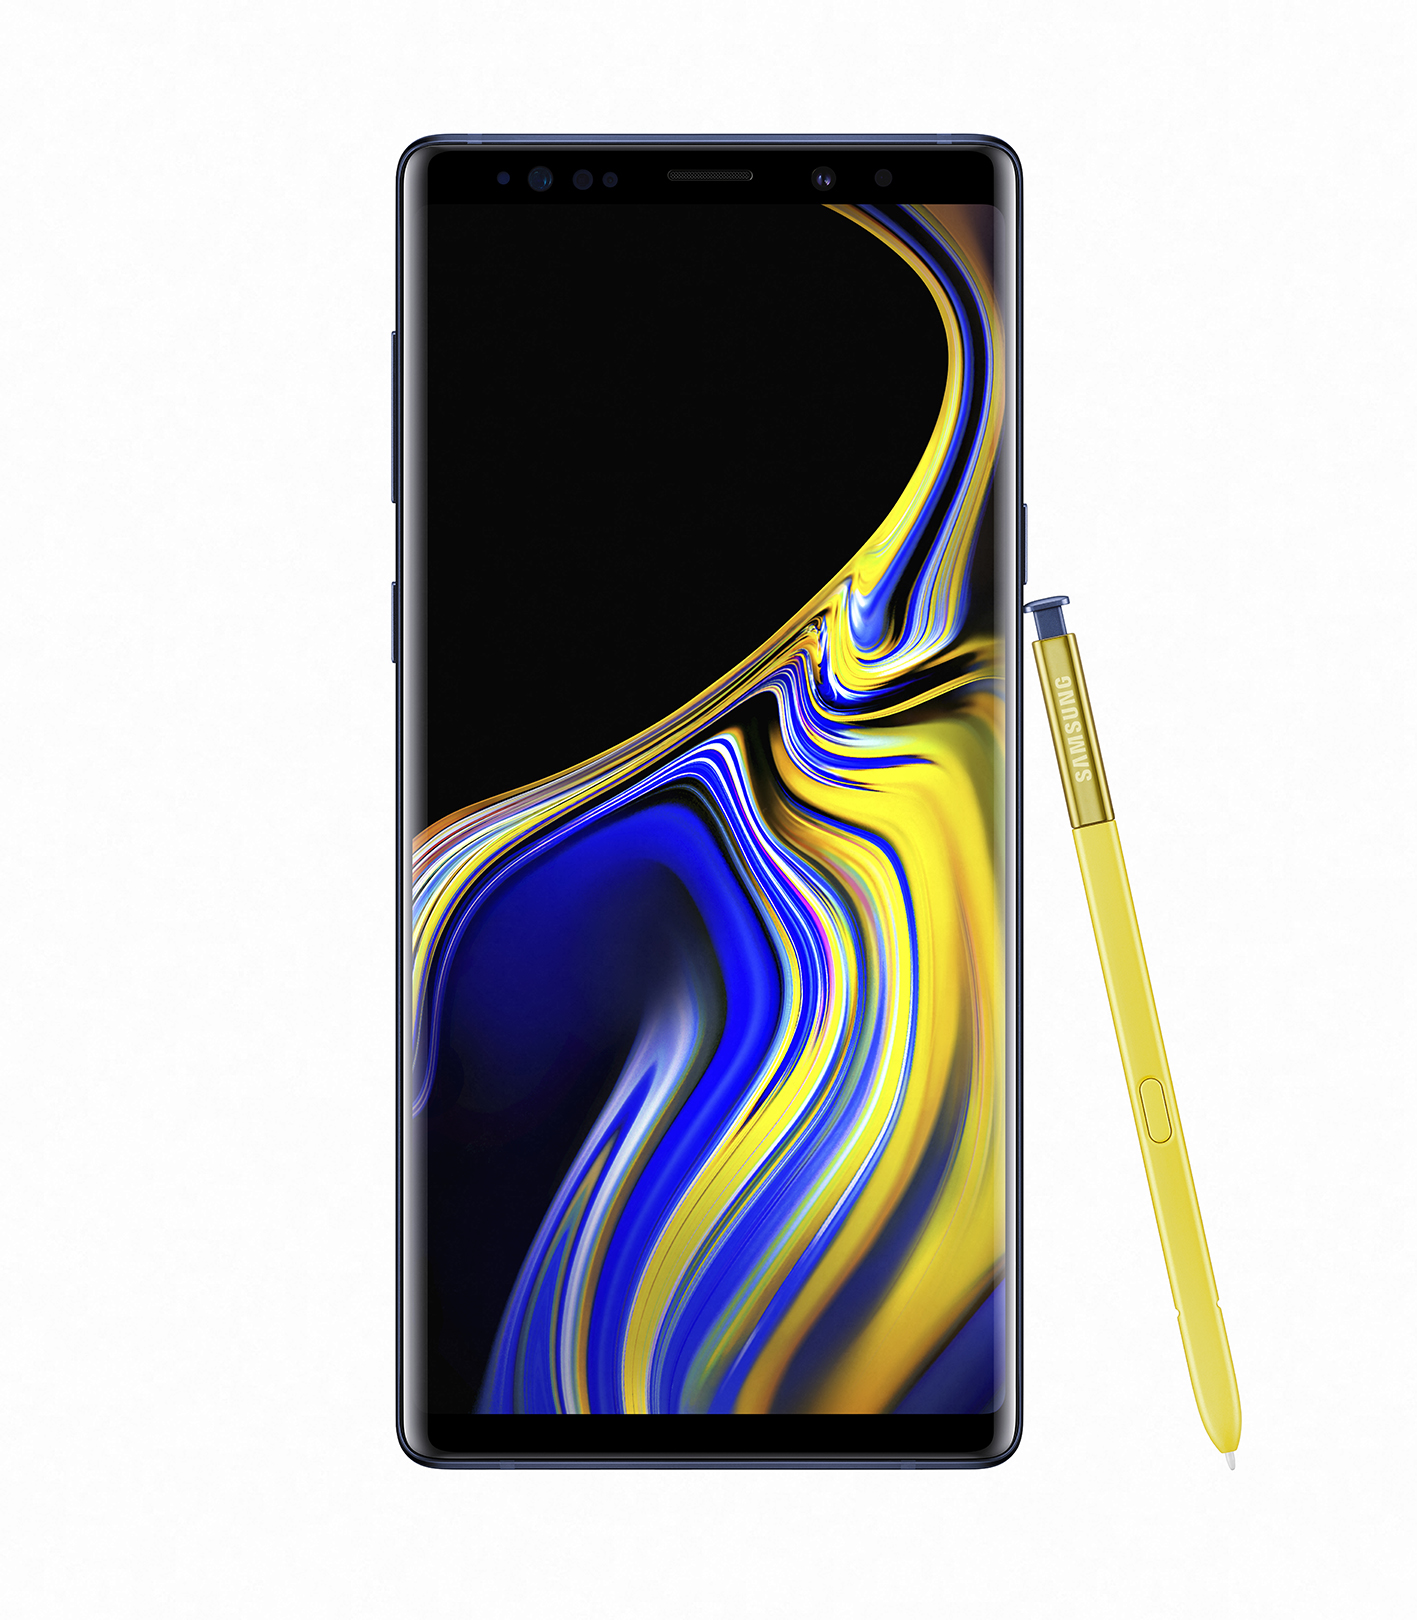 Get the new SAMSUNG Galaxy Note9 in stores now!